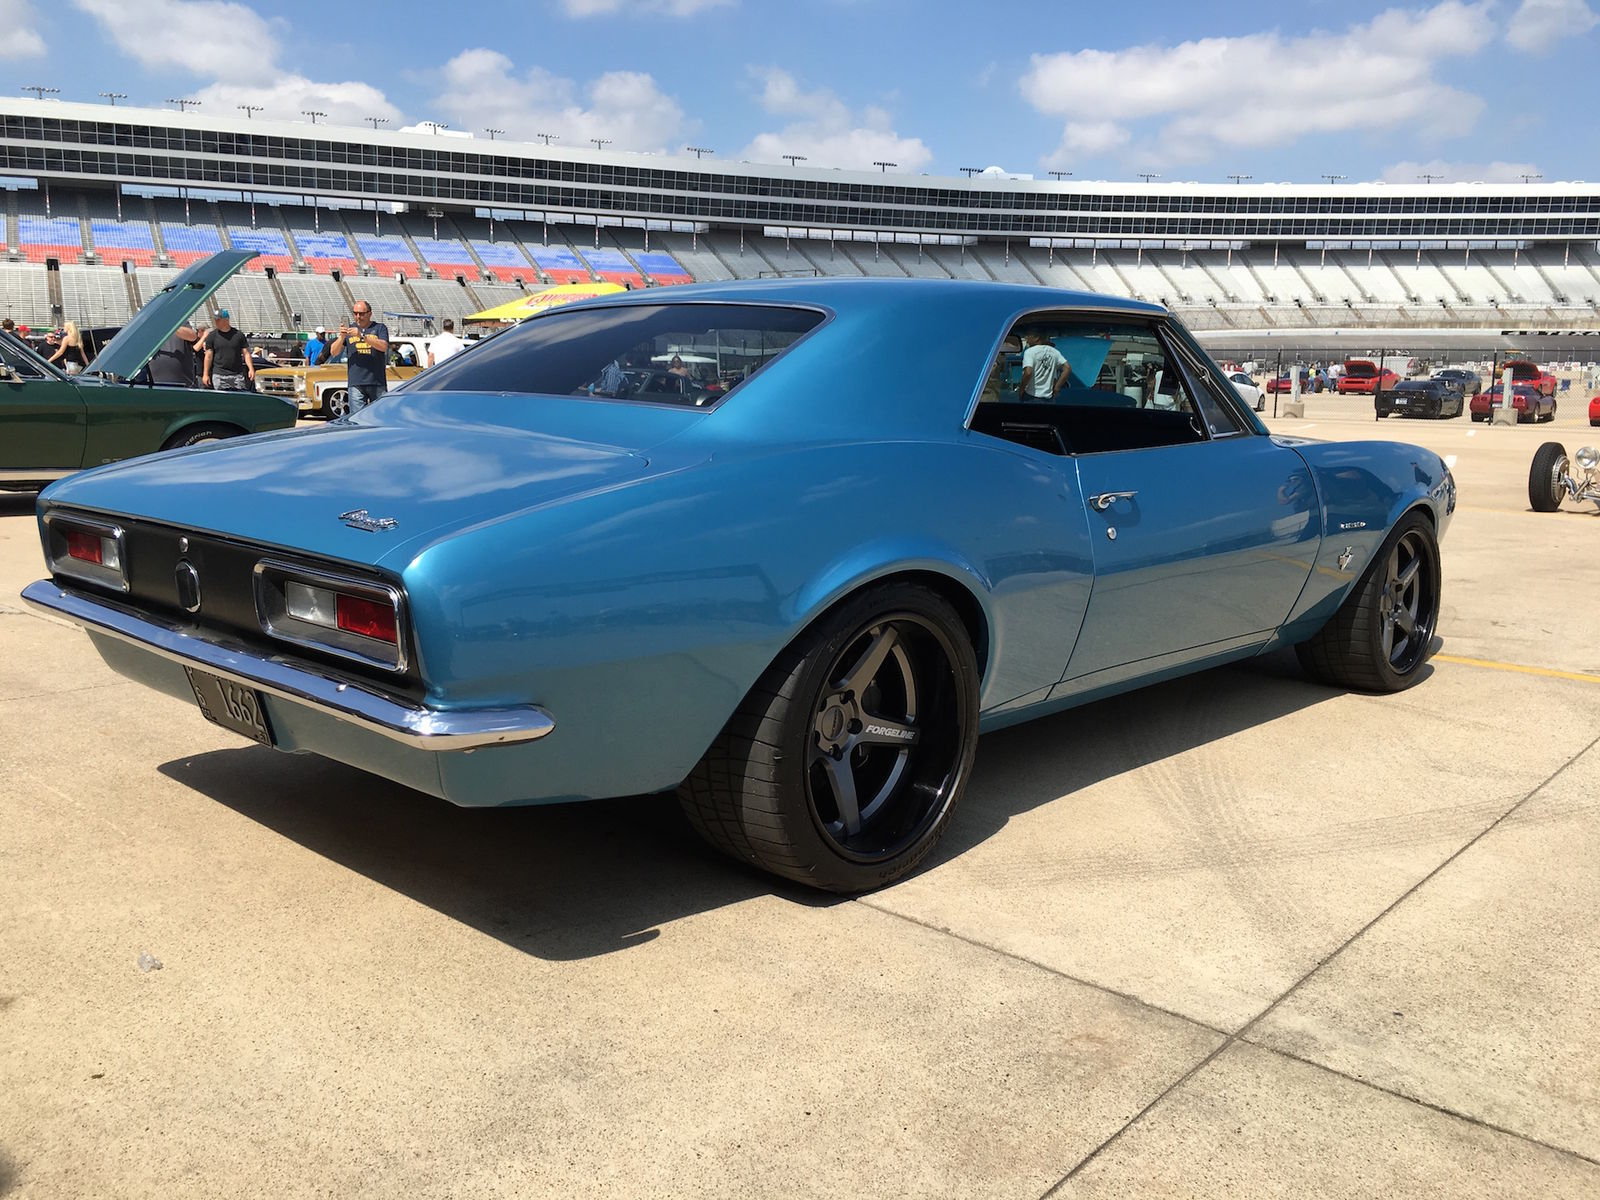 1967 Chevrolet Camaro | Jason's '67 Camaro on Forgeline CF3C Wheels Earns Goodguys Best Ride on BFGs Award